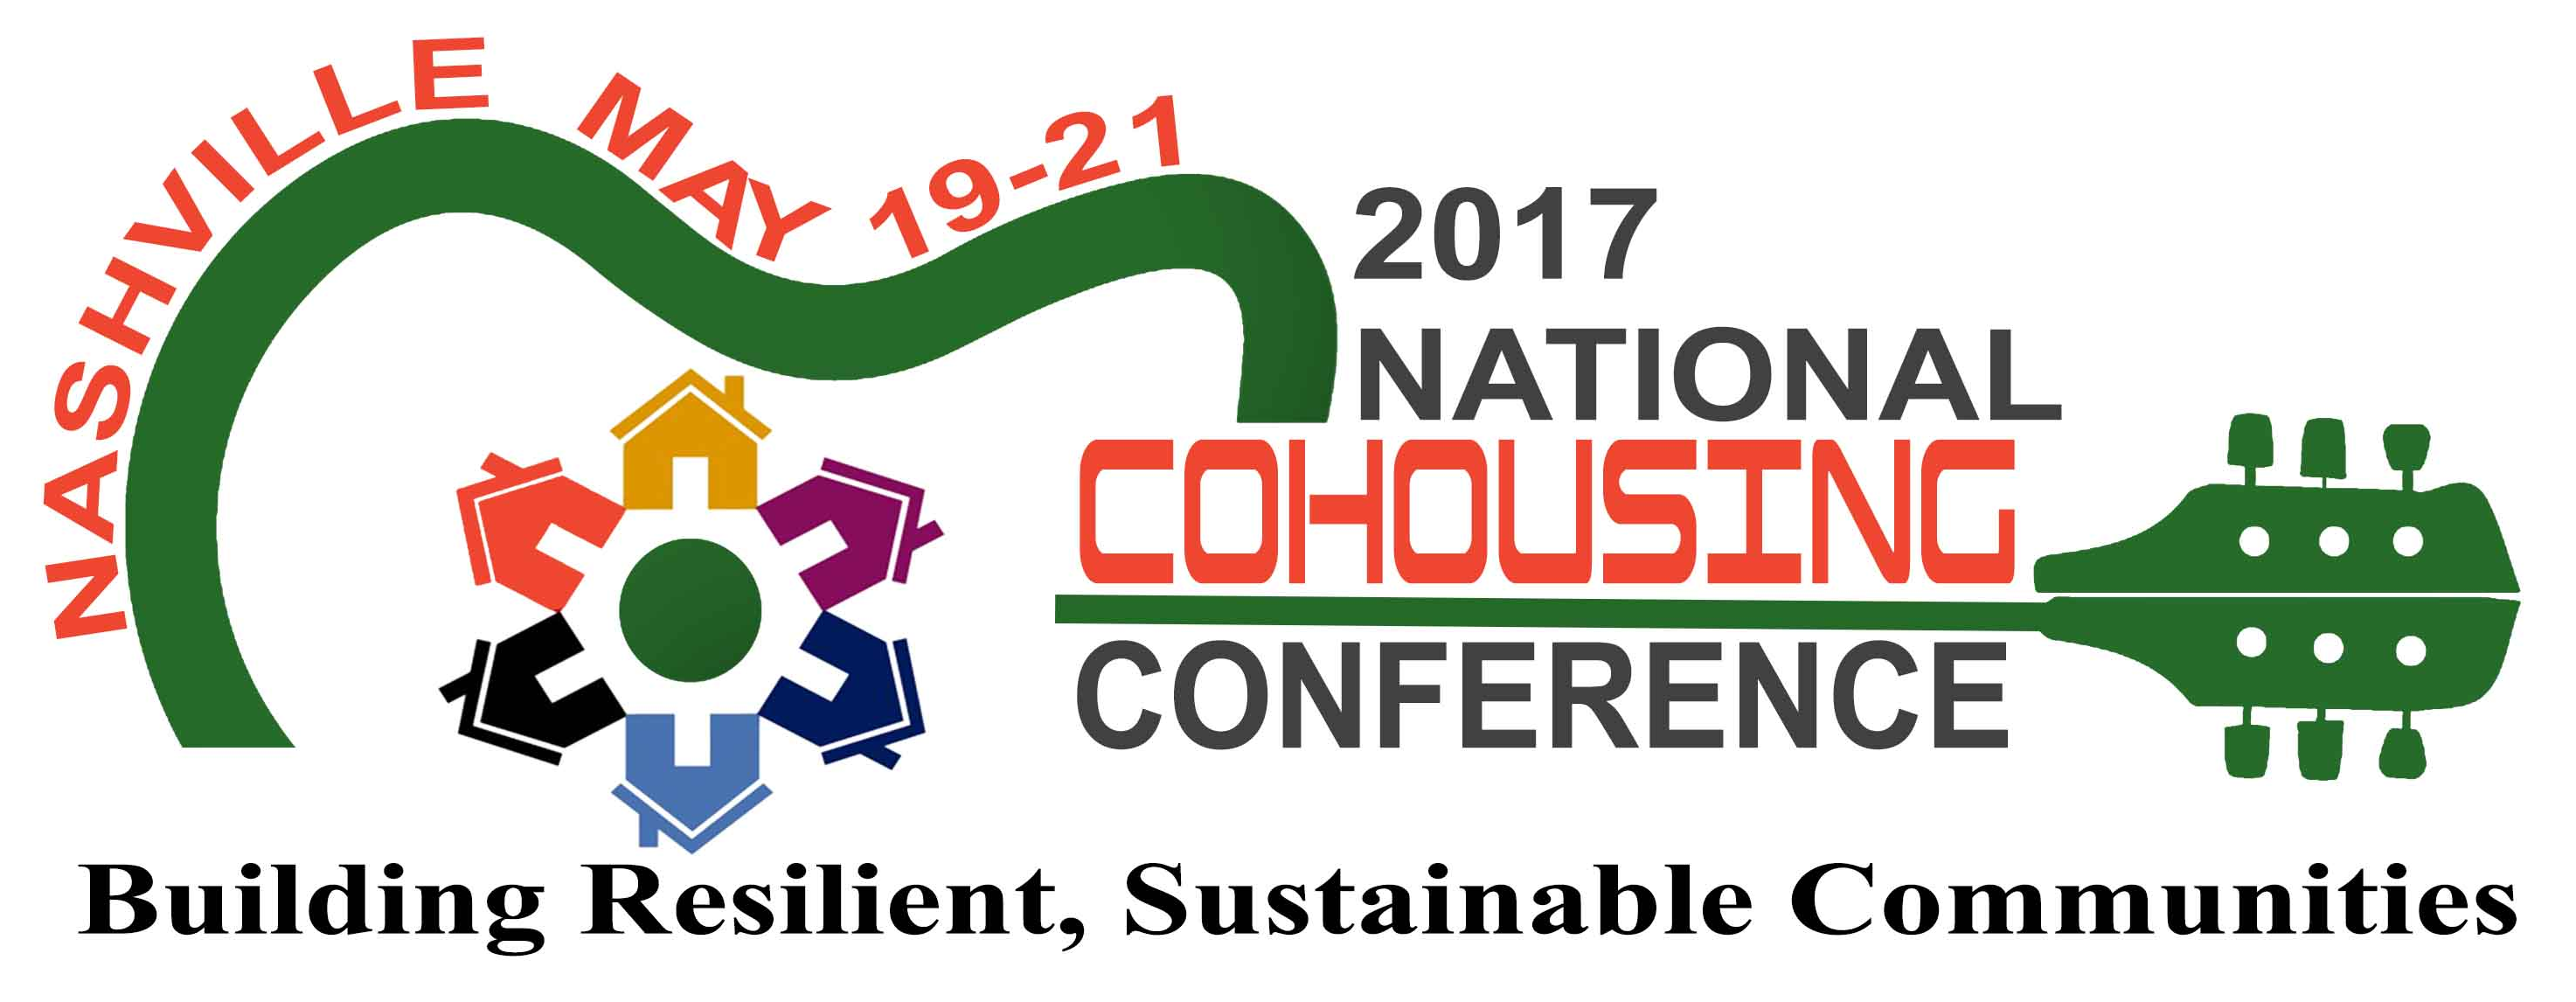 2017 National Cohousing Conference in Nashville